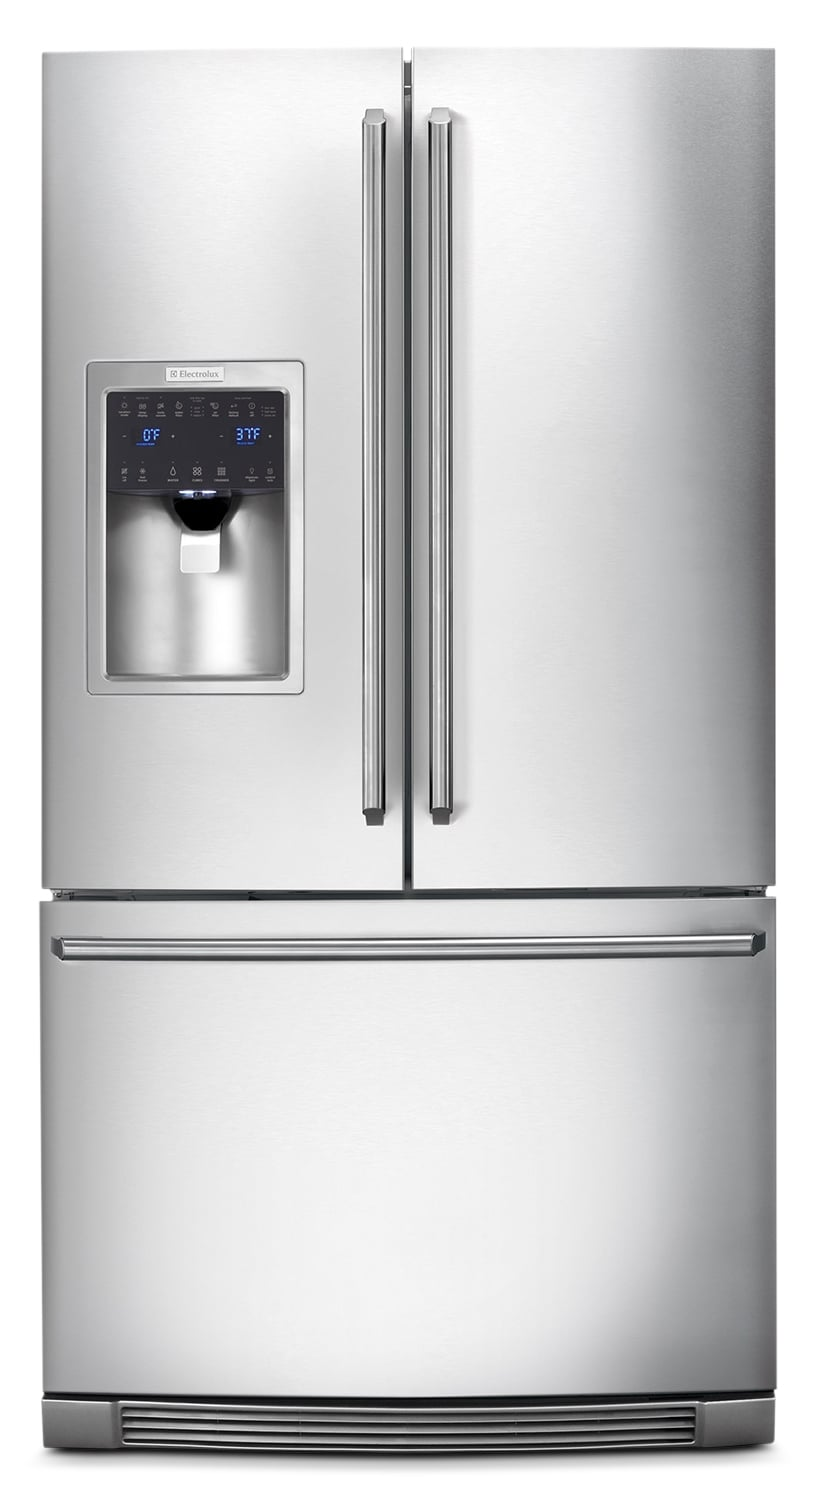 Refrigerators and Freezers - Electrolux Stainless Steel French Door Refrigerator (27.85 Cu. Ft.) - EI28BS65KS